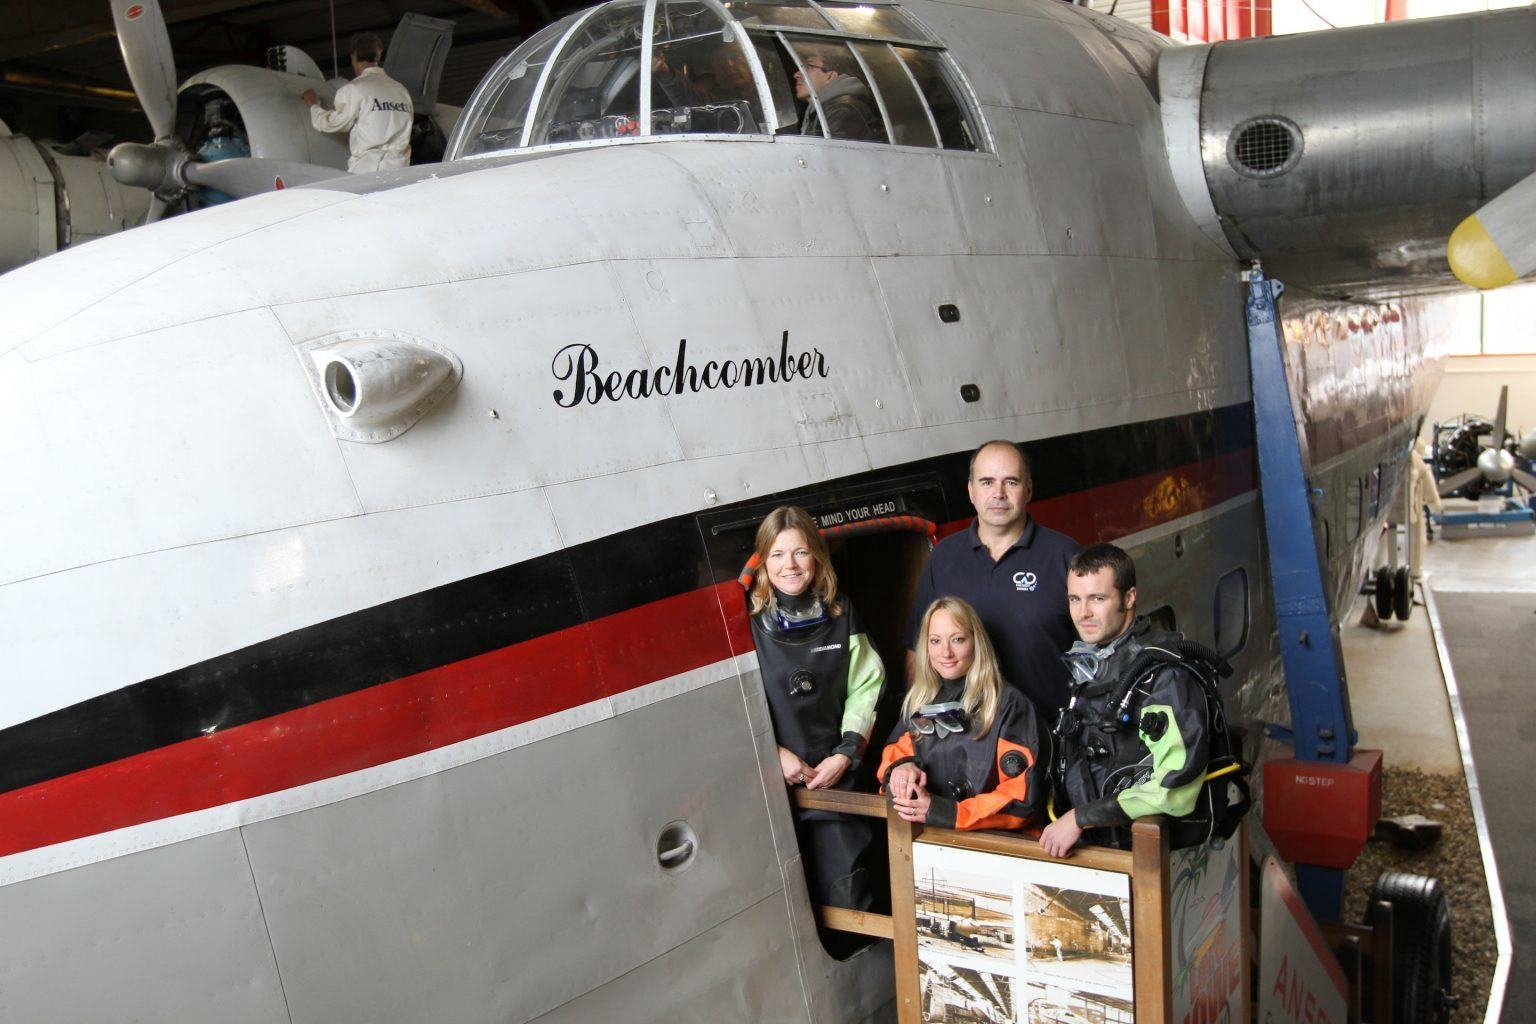 Divers visit the Flying Boat at Solent Sky Museum in Southmpton